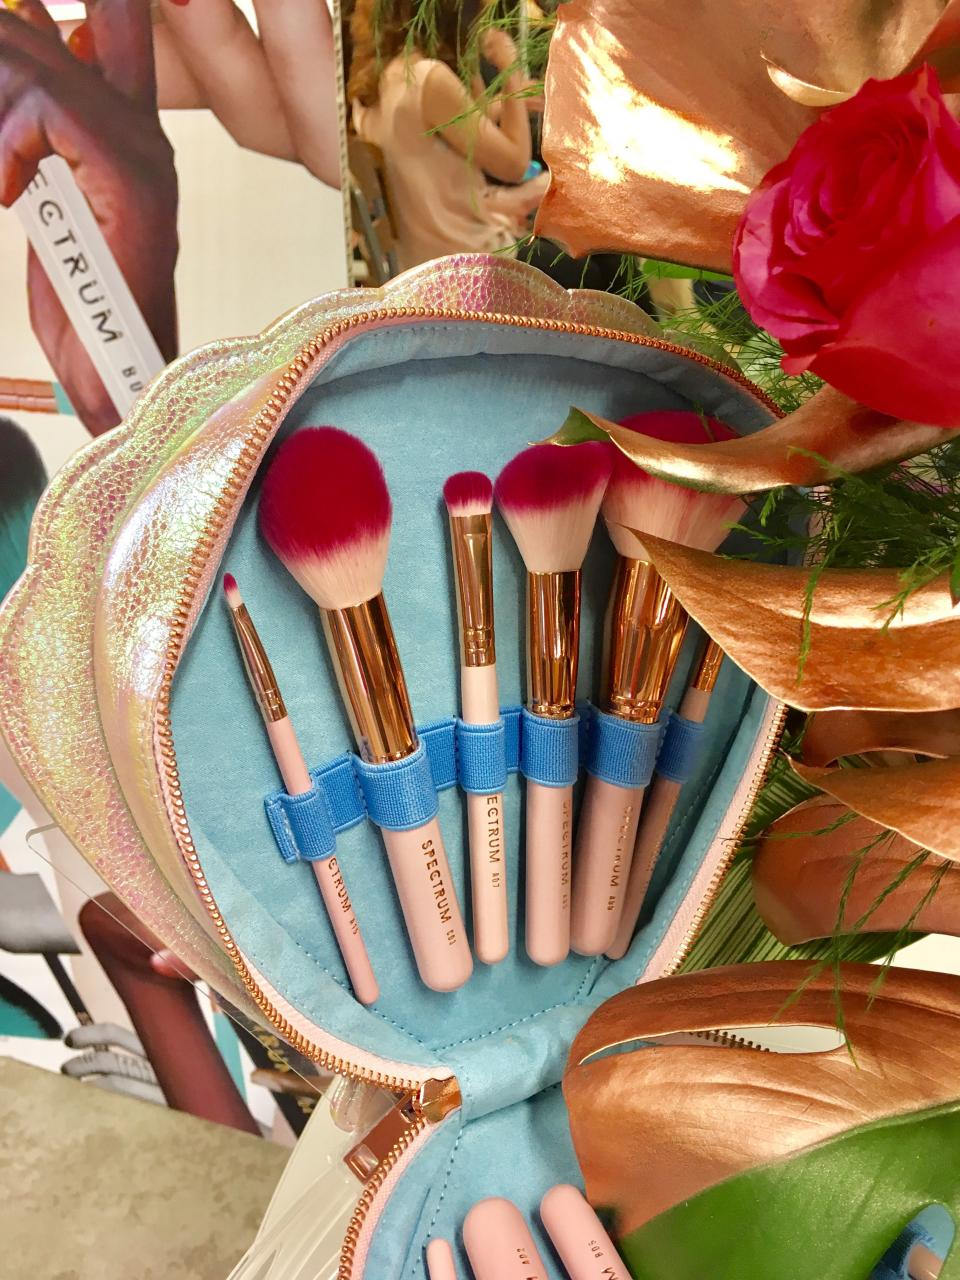 Spectrum Collection Makeup Brushes- The Bomb Shell pink and gold makeup brushes in a clam shaped case